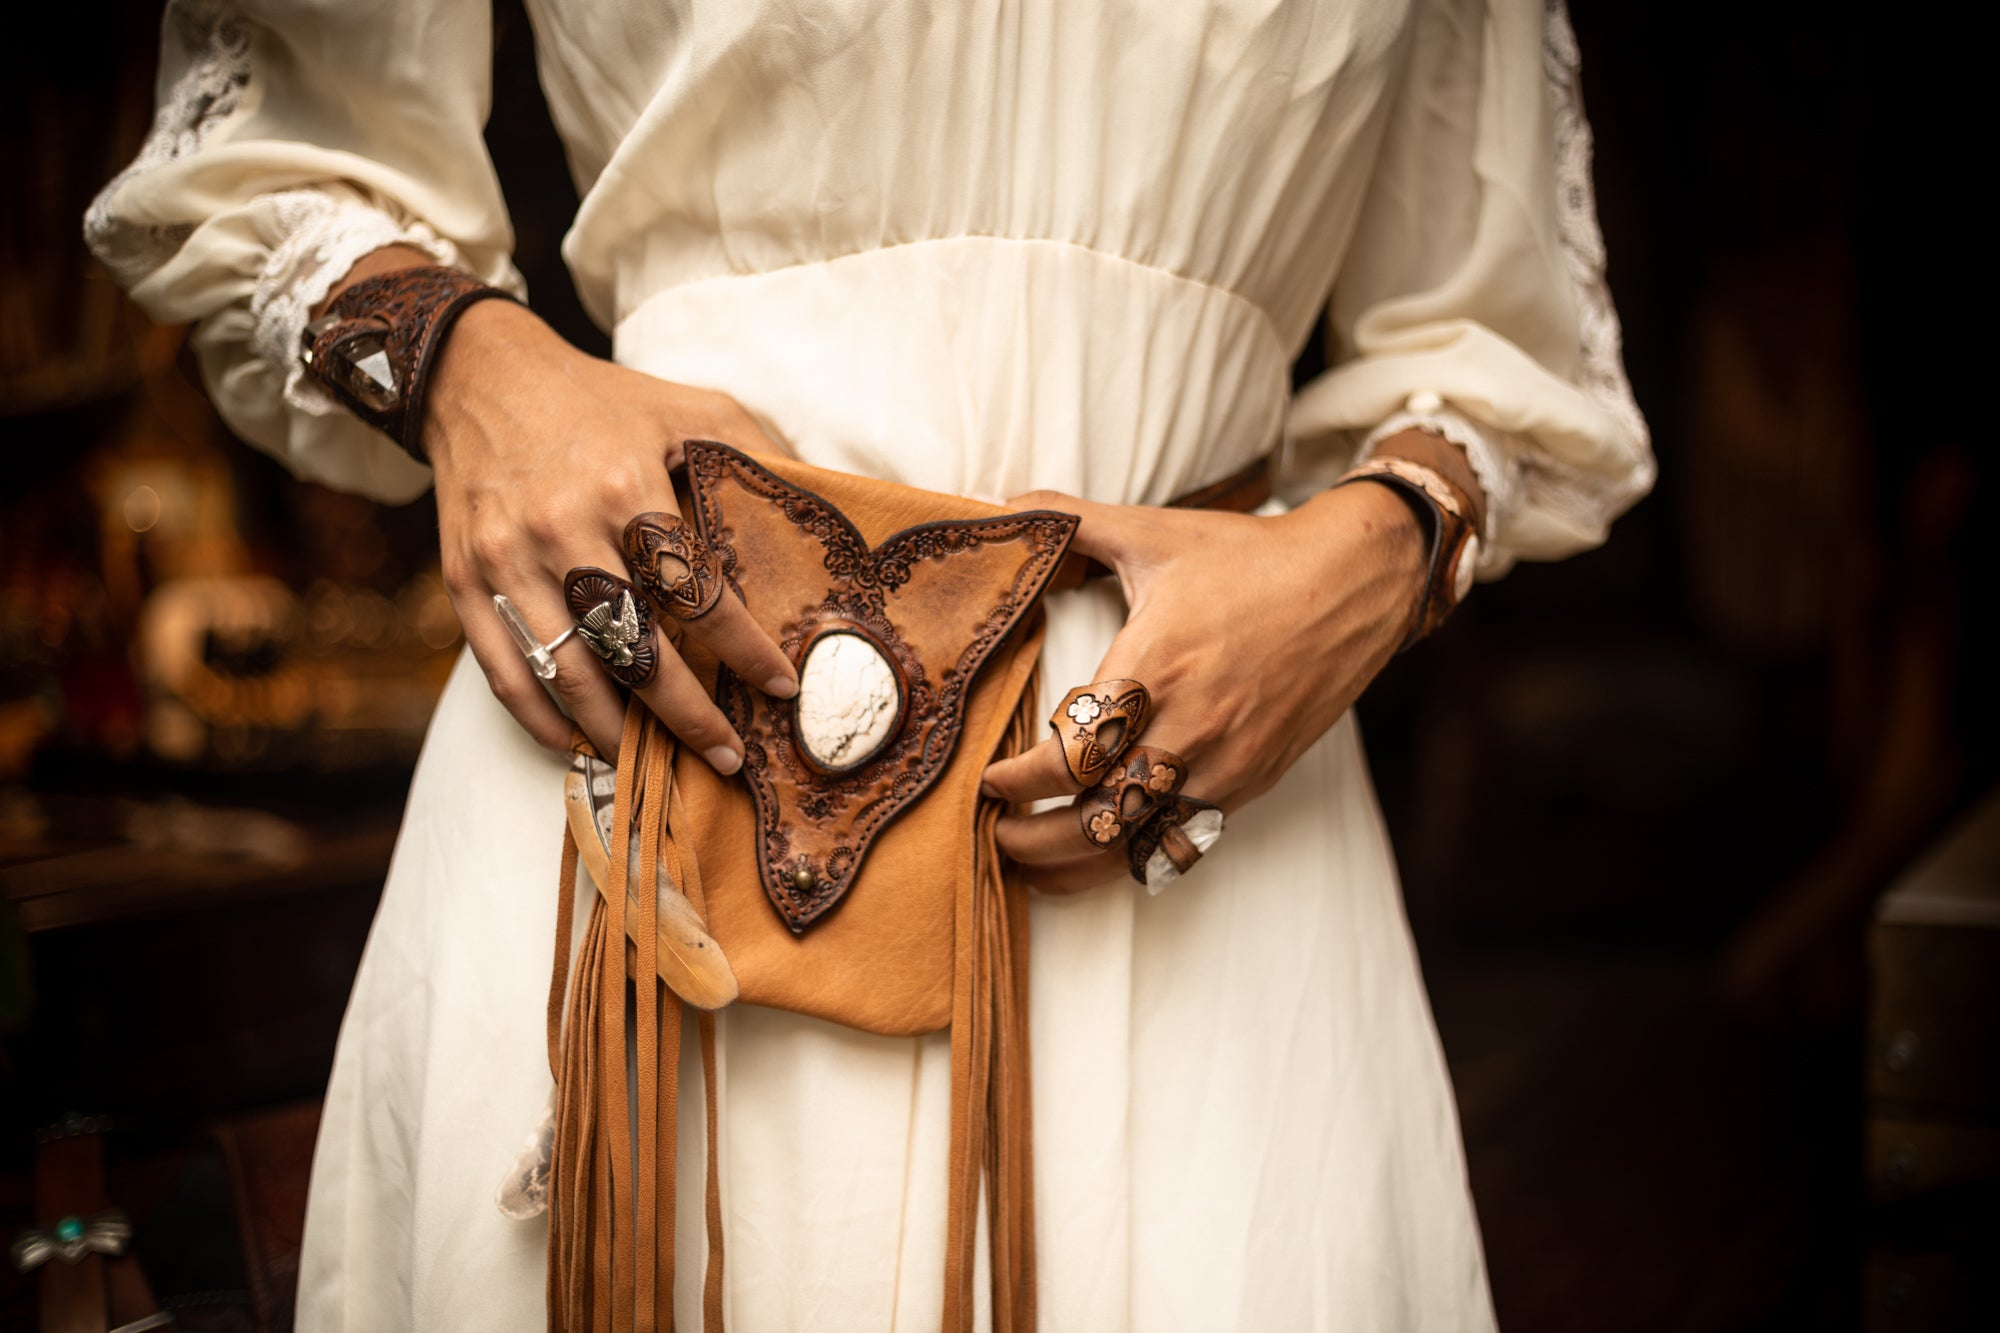 Gypsy Wanderer tasseled Phone Pouch with in soft tan leather featuring a white Howlite stone - $480